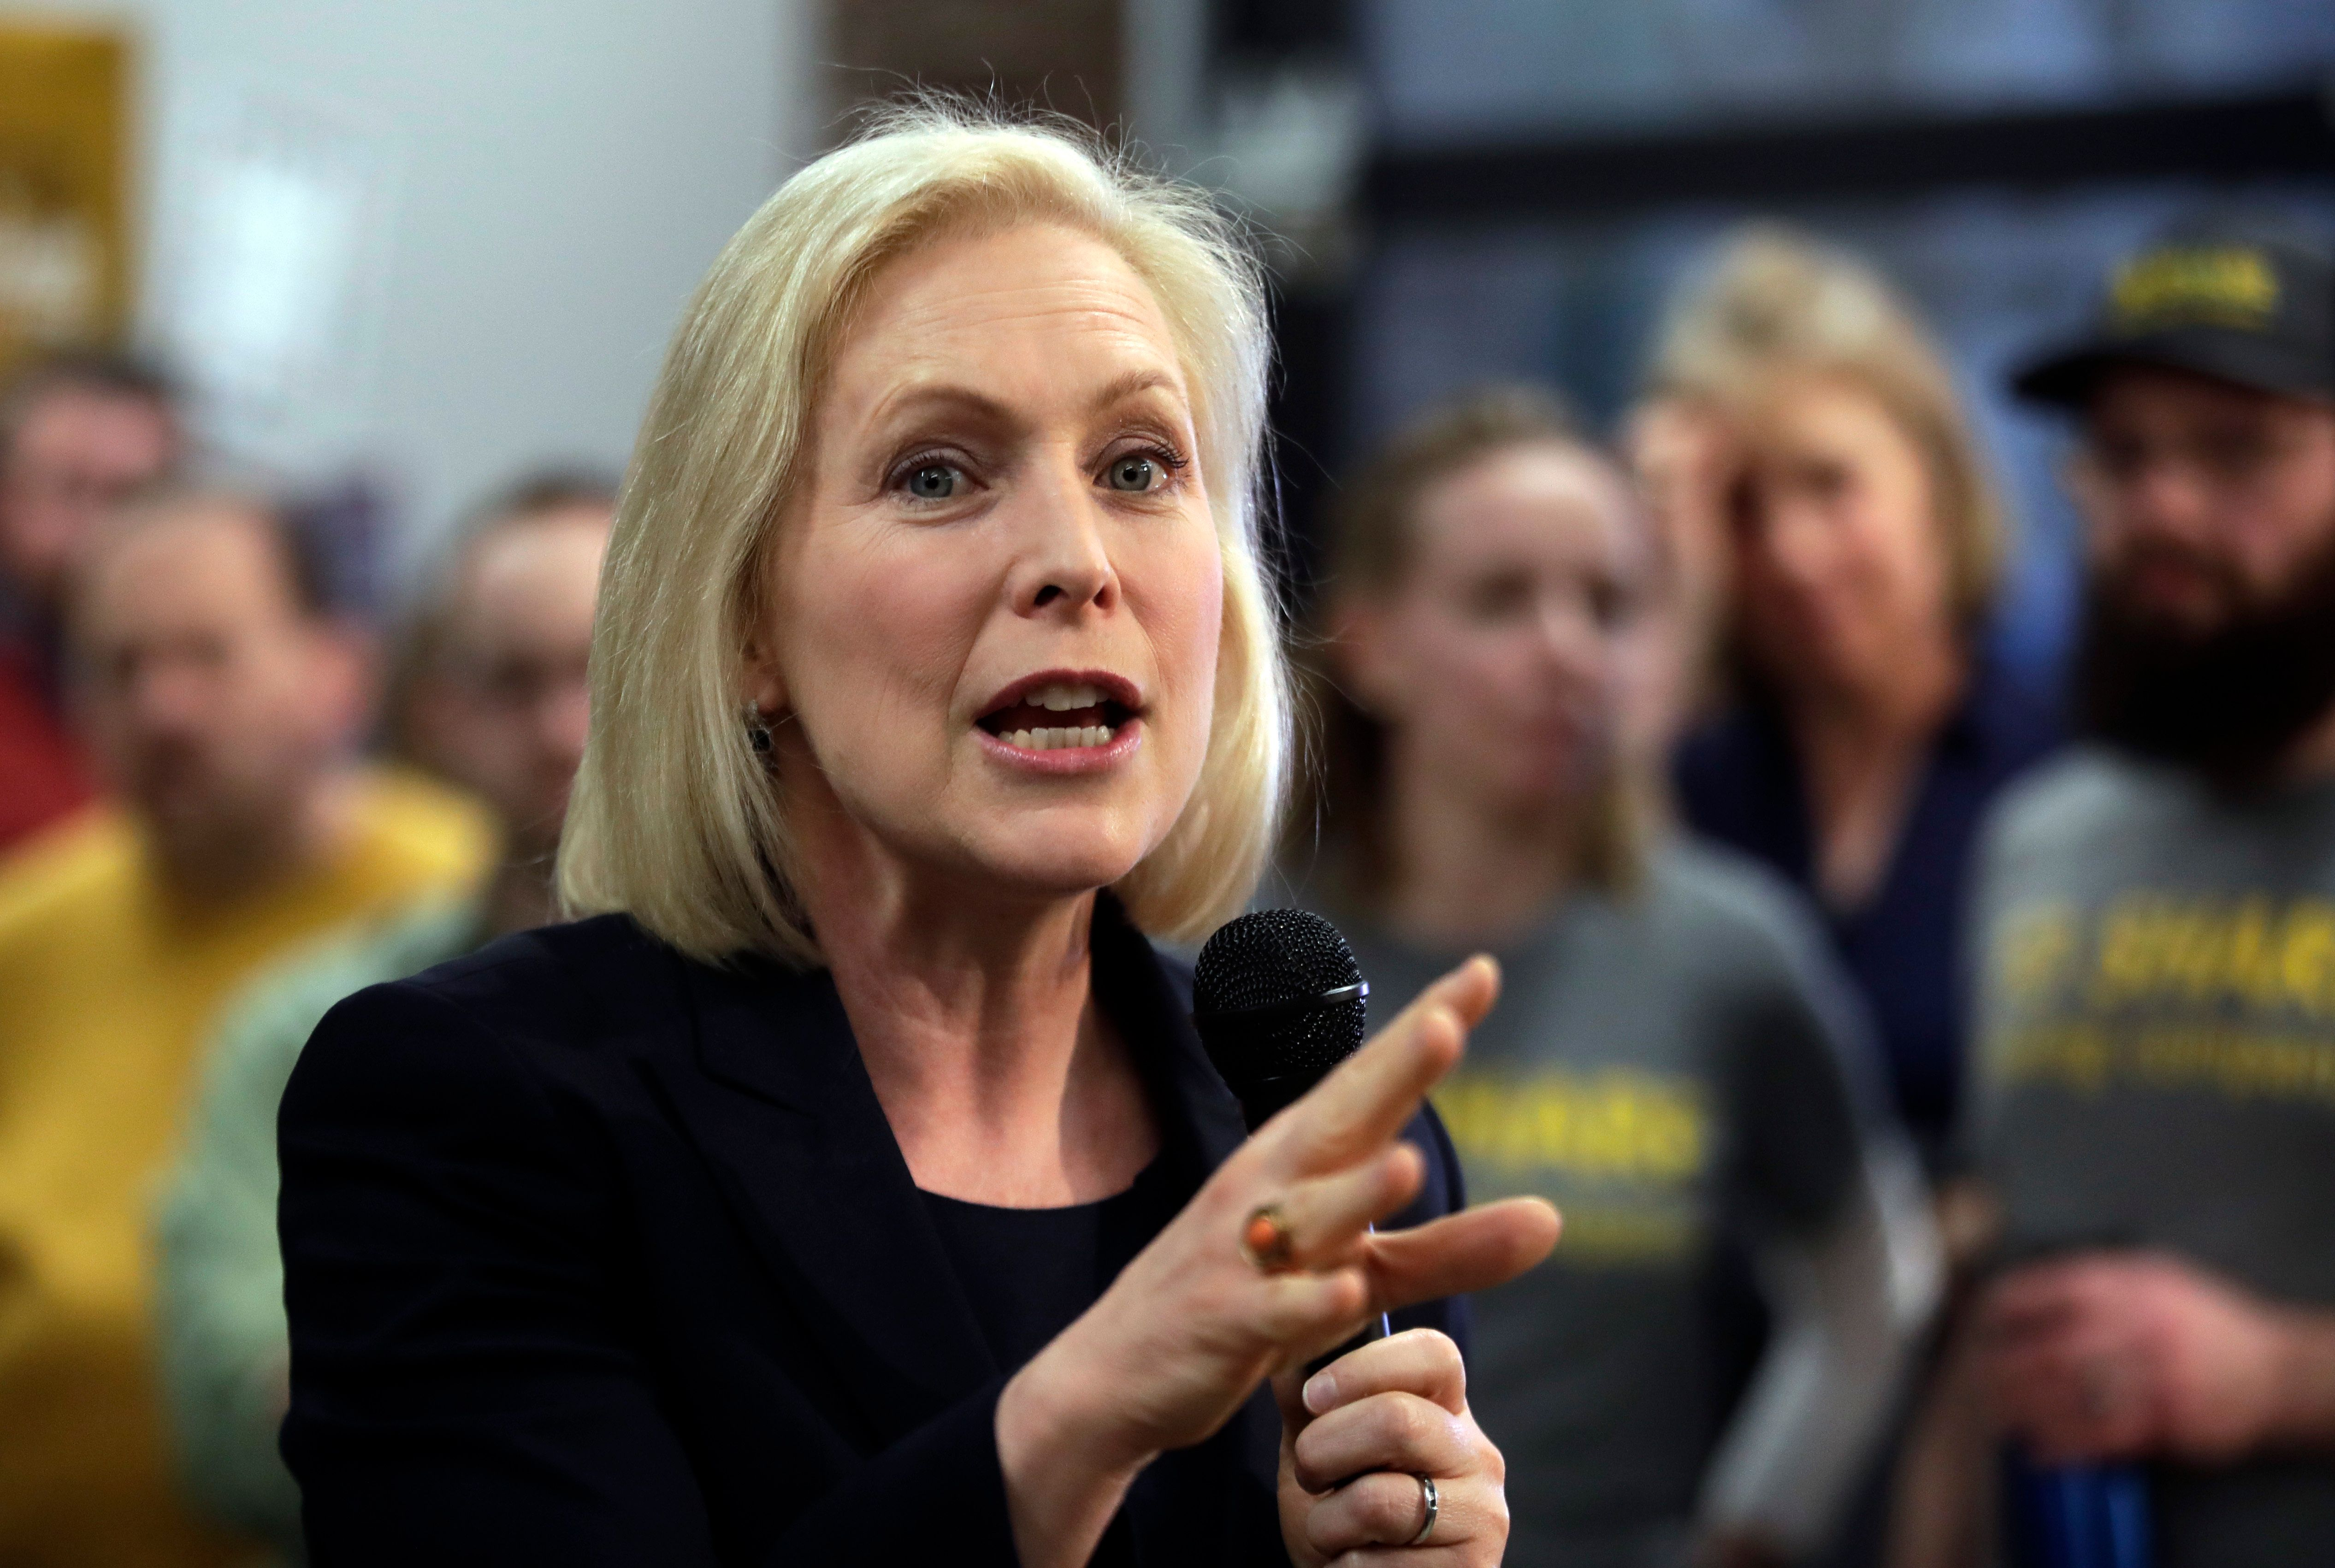 Kirsten Gillibrand in 2020 race for the Democratic nomination for US president